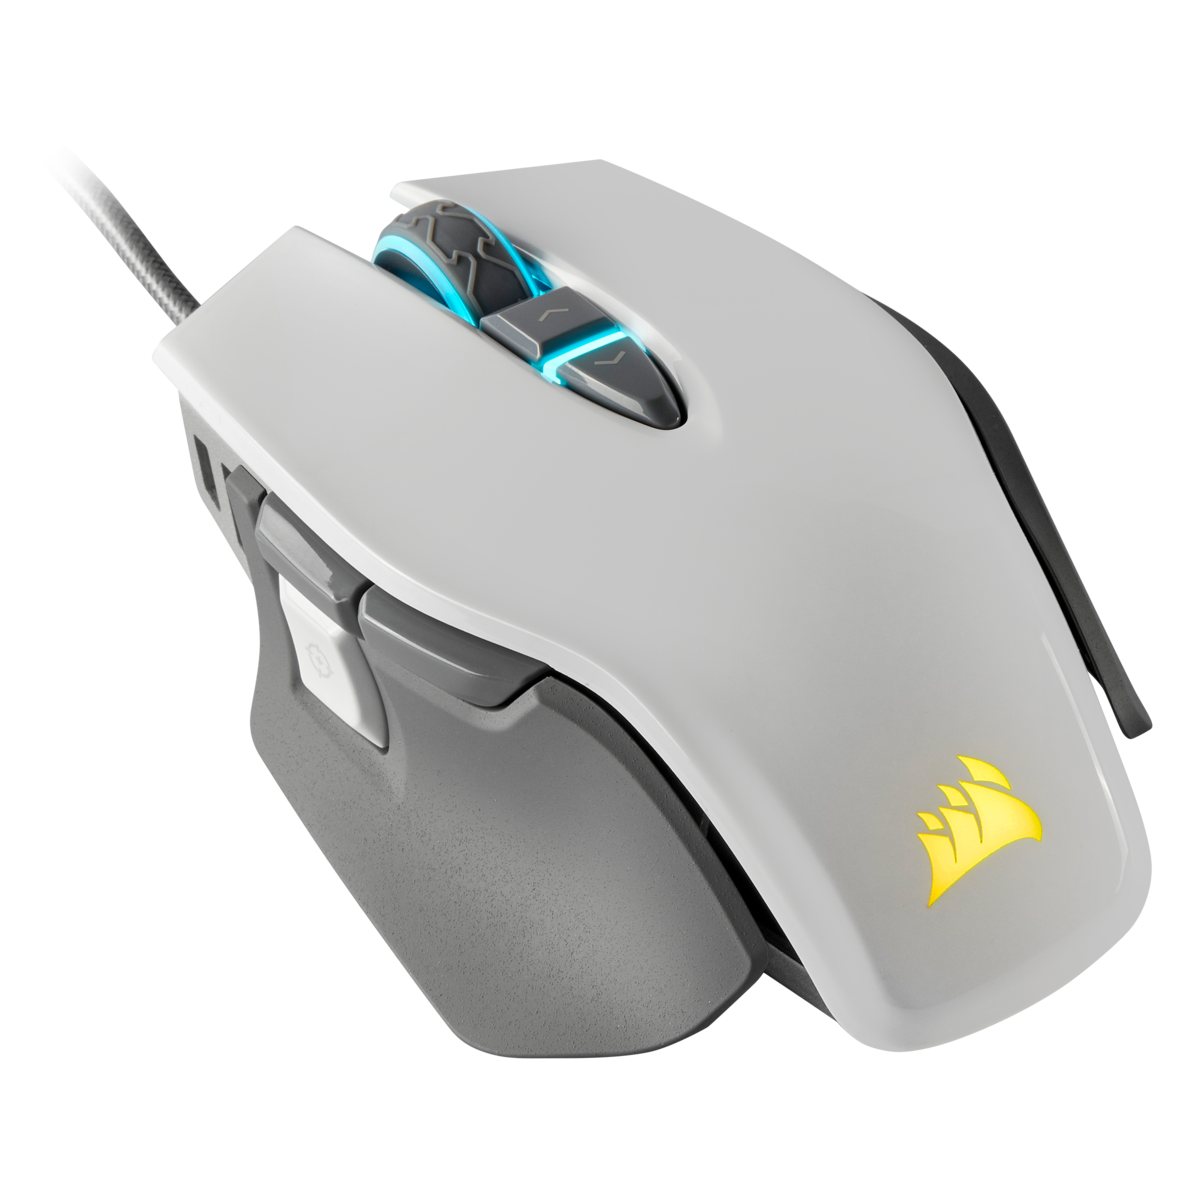 Corsair M65 RGB ELITE Tunable FPS Gaming Mouse — White - Felton Distribution